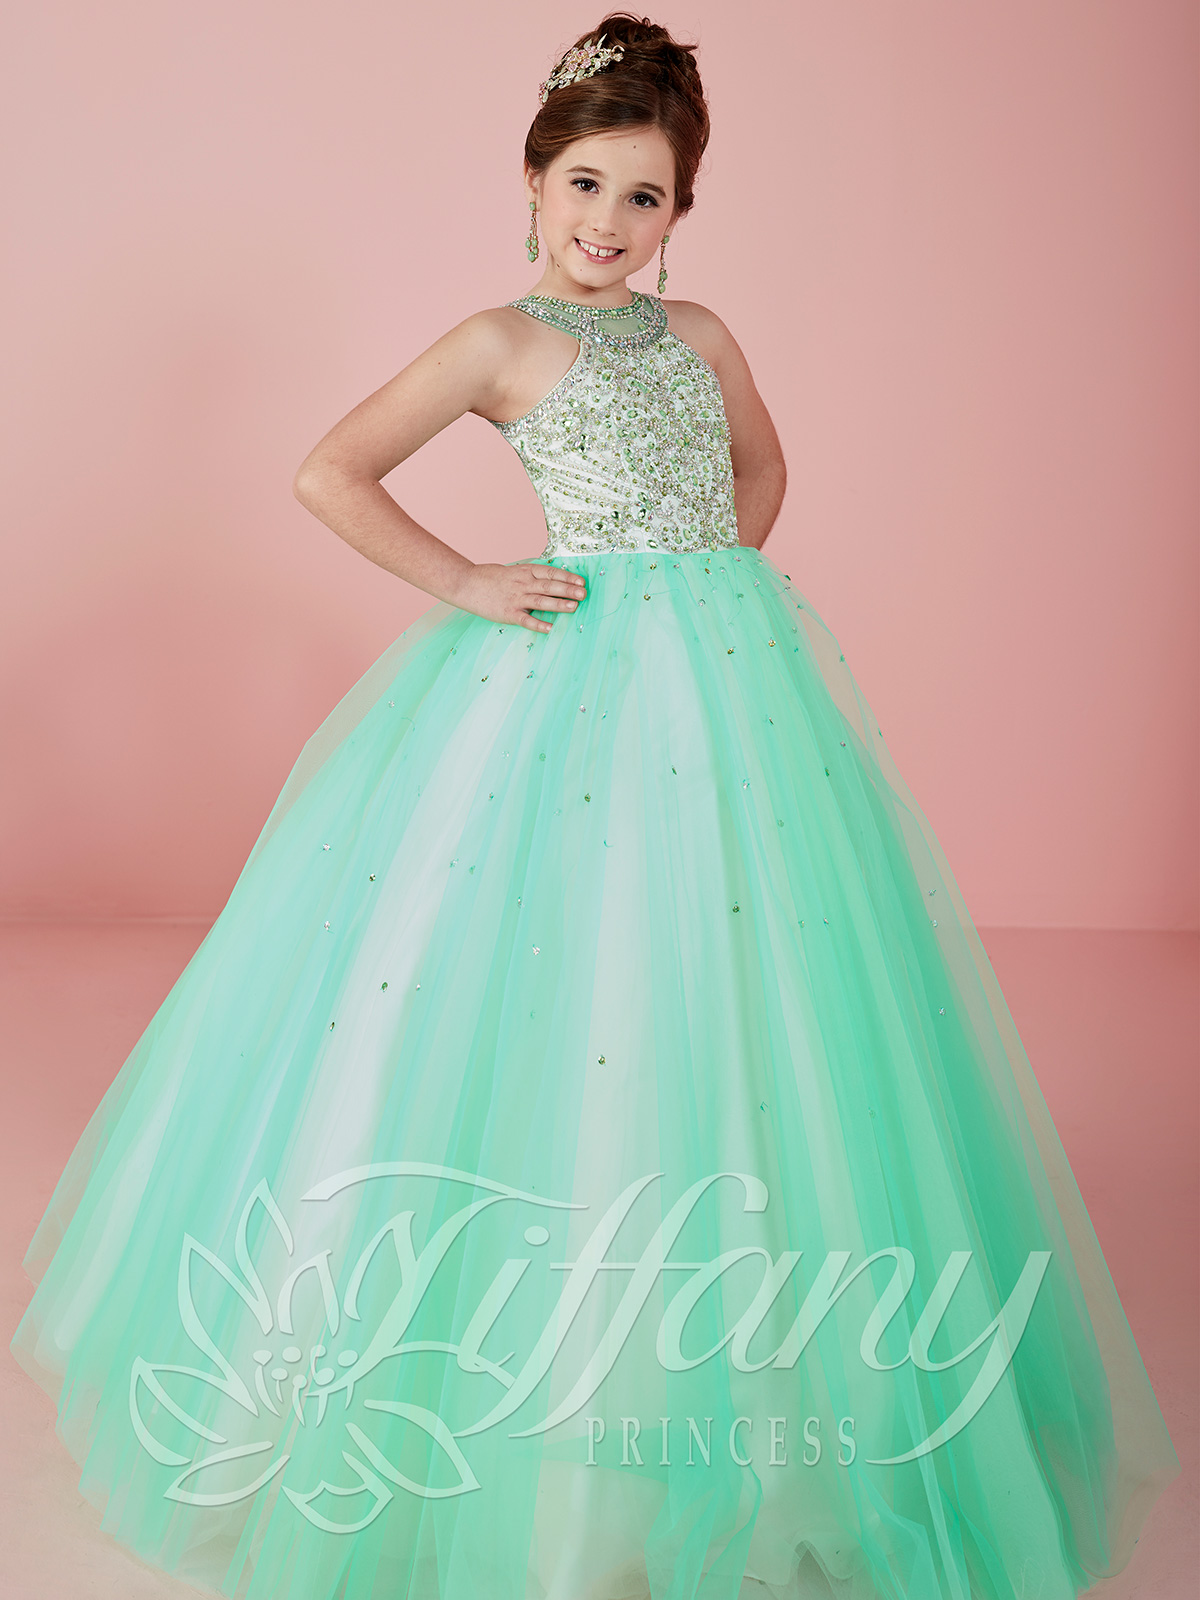 Tiffany Princess 13470 Halter Beaded Ball Gown Pageant ...